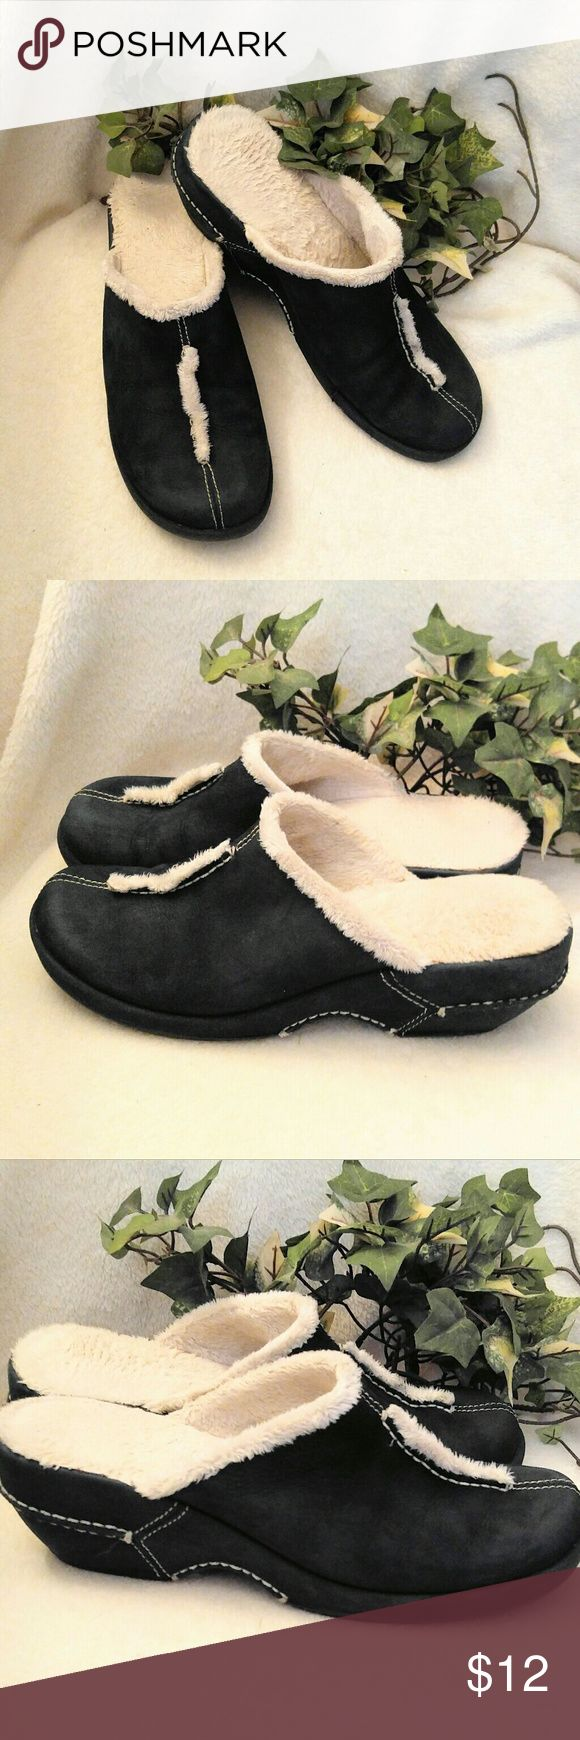 White Mountain Mules White Mountain Mules SZ 6 M- Good Condition- Toe area is a little lighter from wear. White Mountain Shoes Mules & Clogs